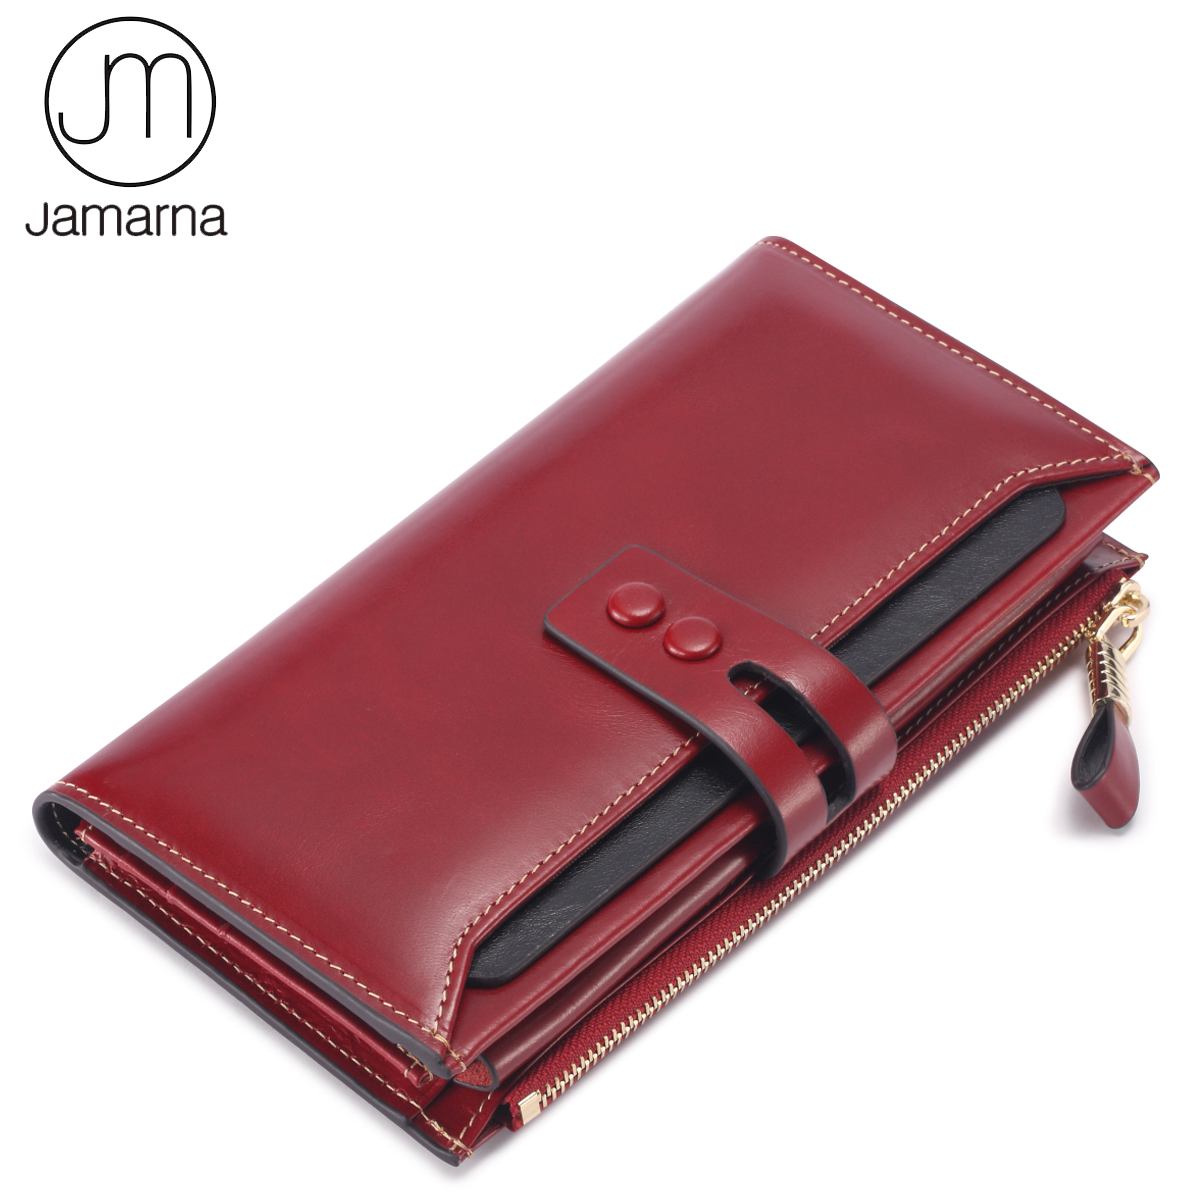 Jamarna Brand Women Wallets Genuine Leather Long Clutch Women Purse With Card Holder Phone Zipper Pocket Ladies Wallet Female cossroll brand women wallets genuine leather long thin purse clutches bags cards holder zipper phone pocket lady party wallet